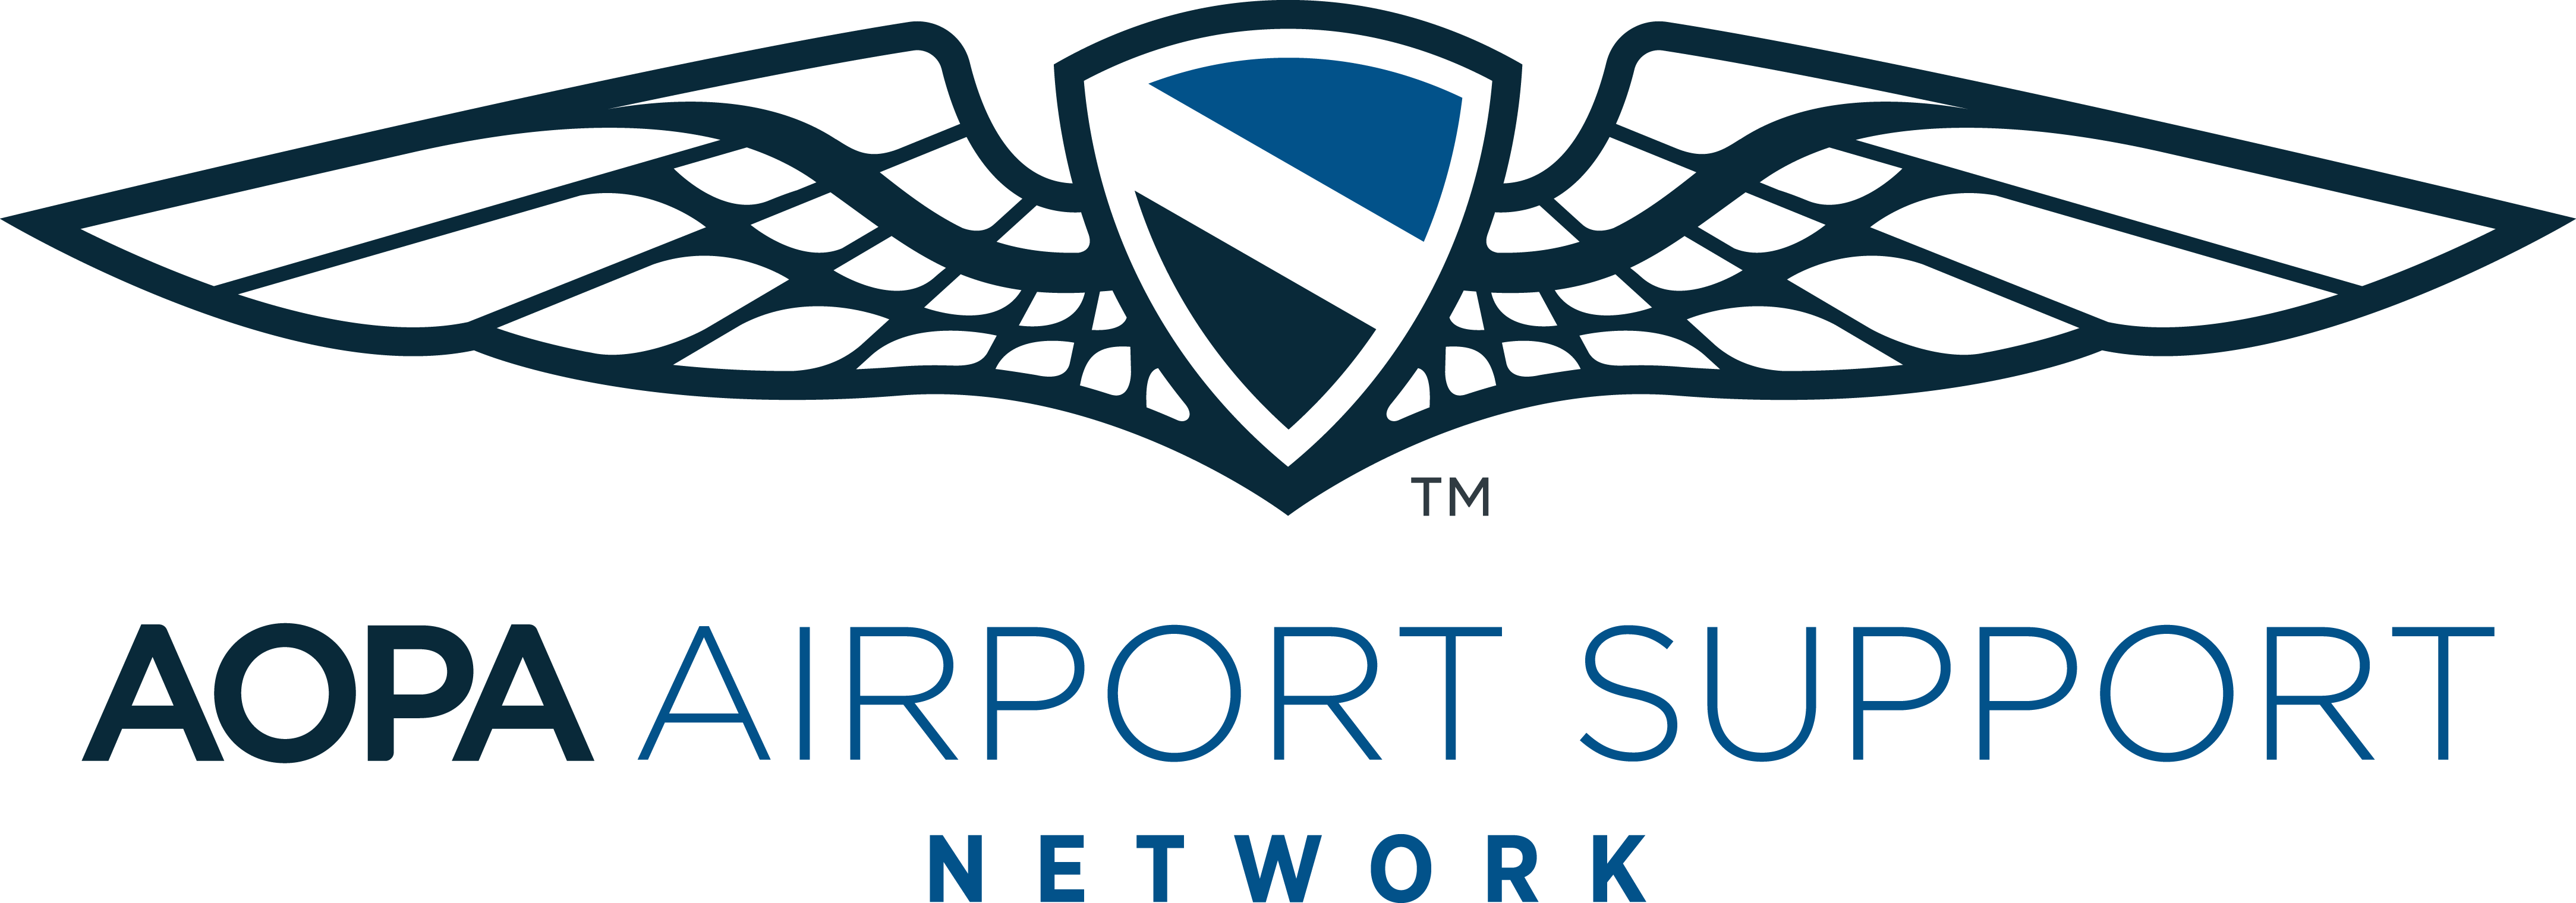 Airport Support Network - Aopa PNG